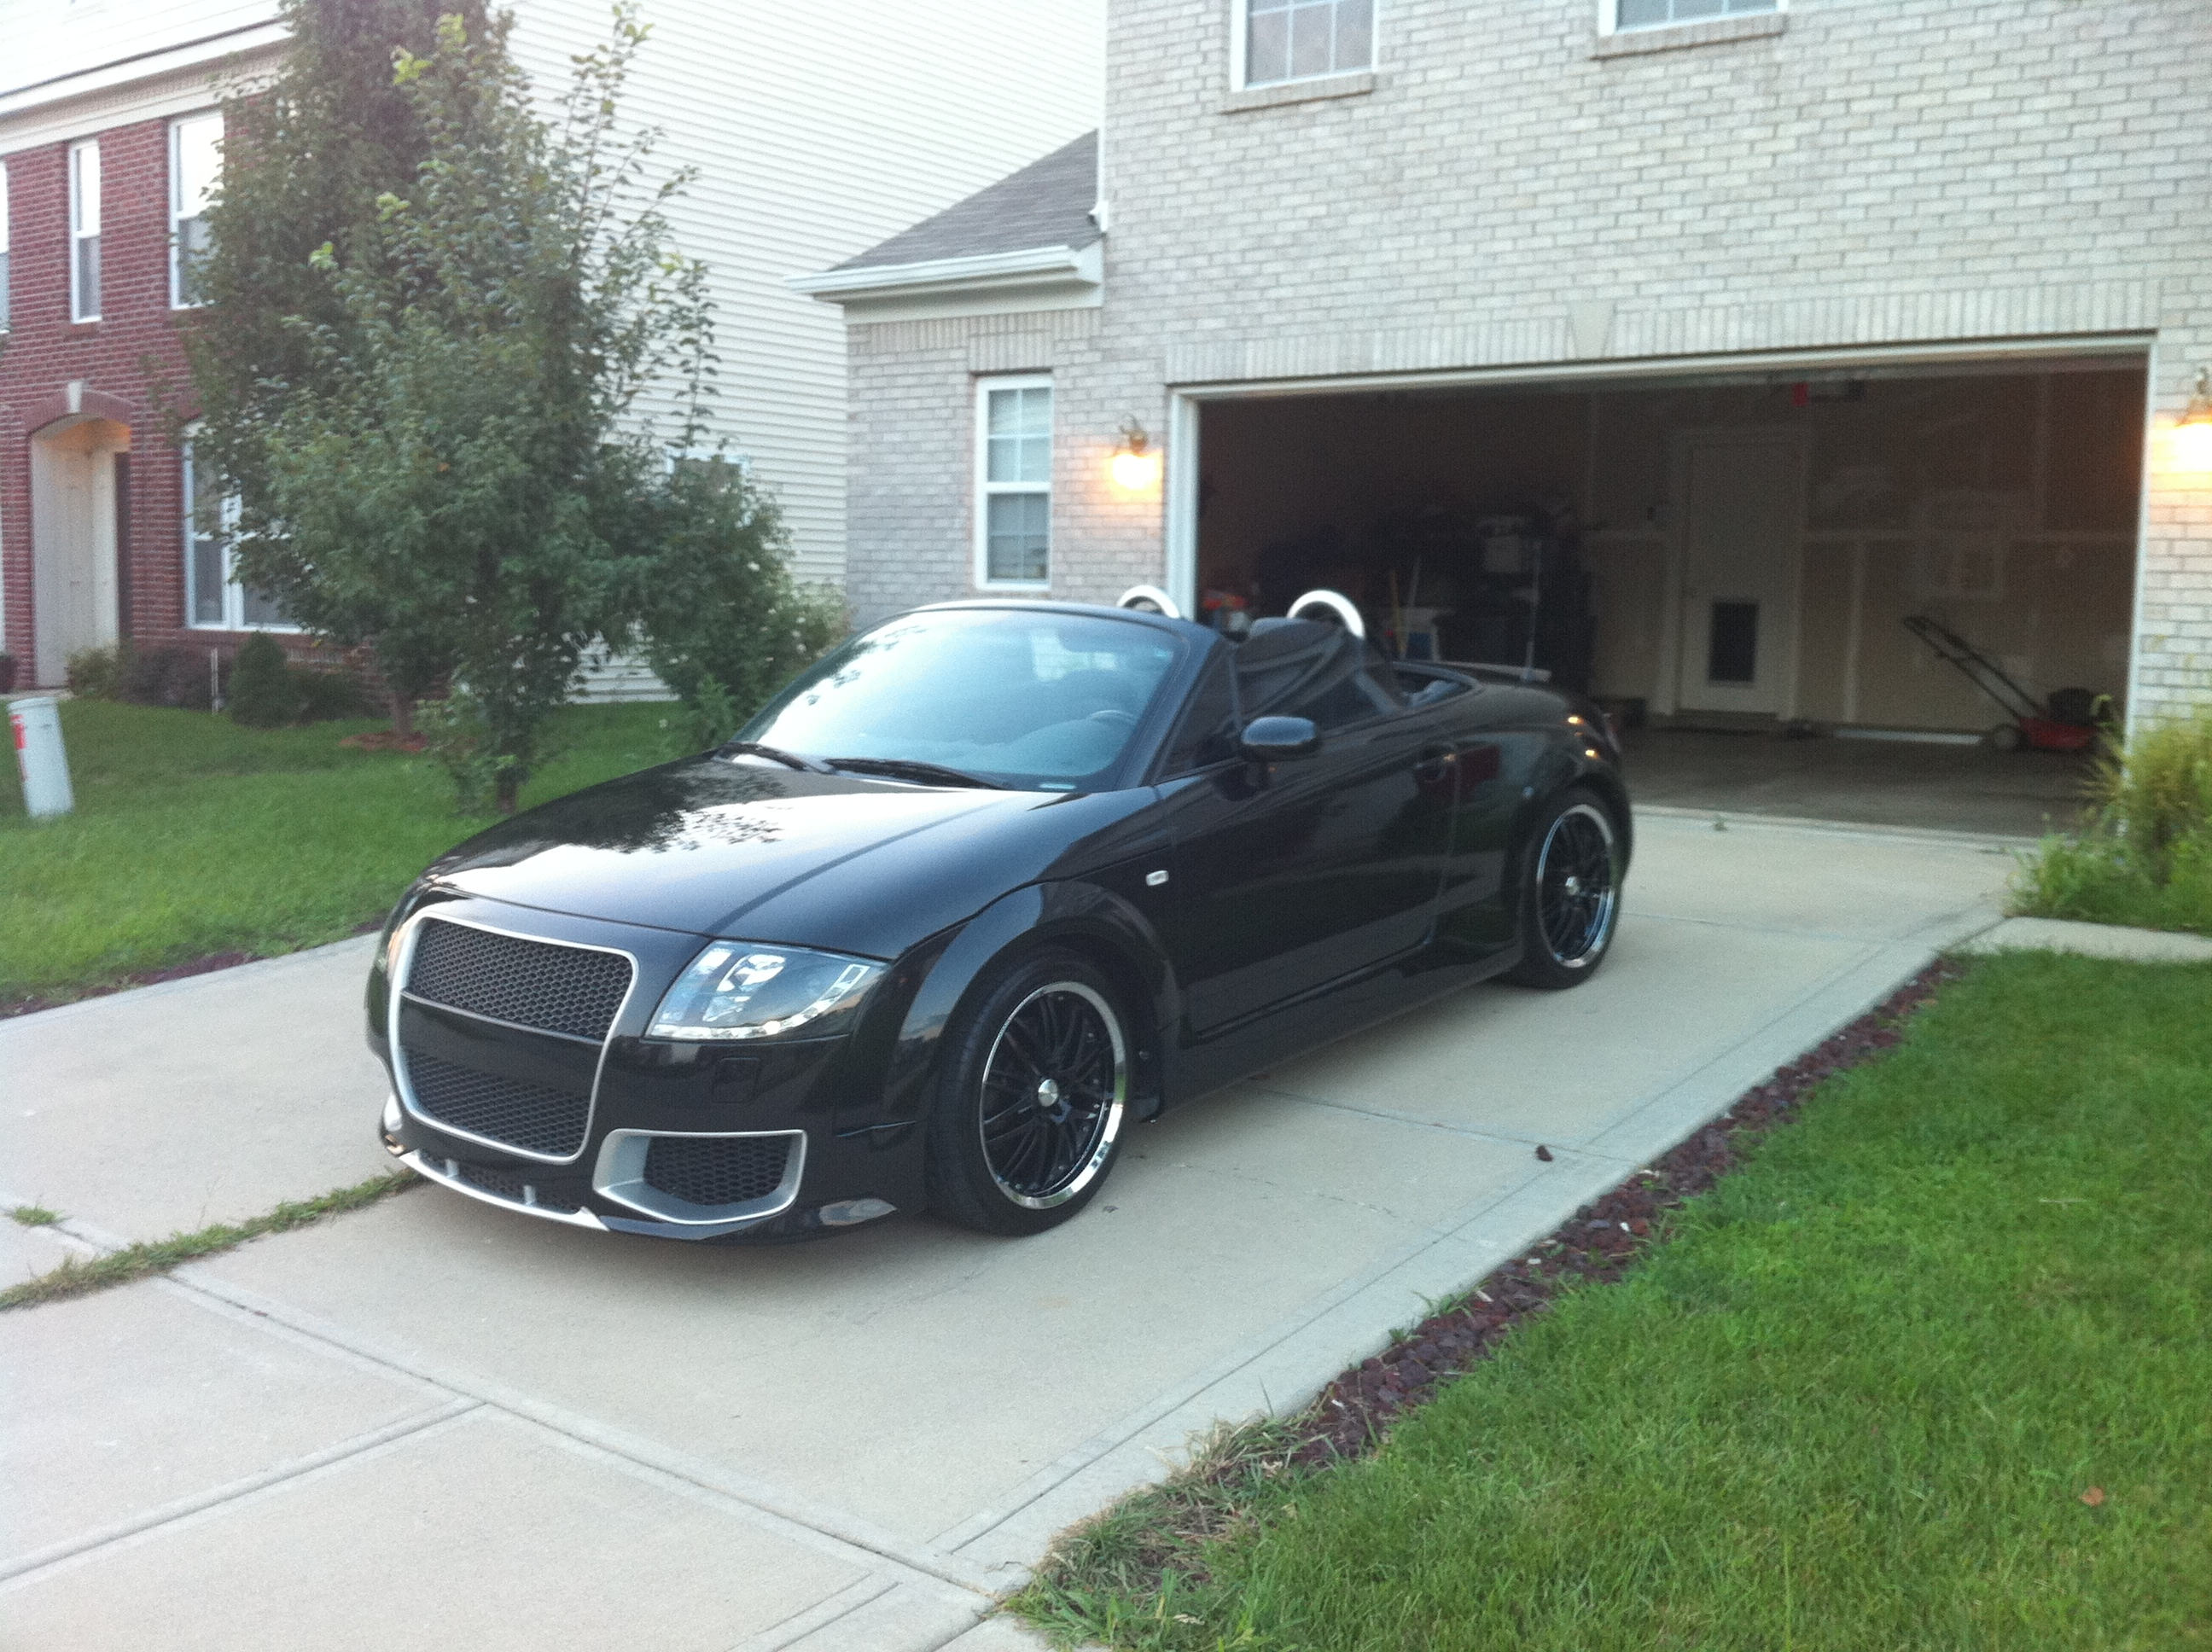 t467w 2002 audi tt specs, photos, modification info at cardomain